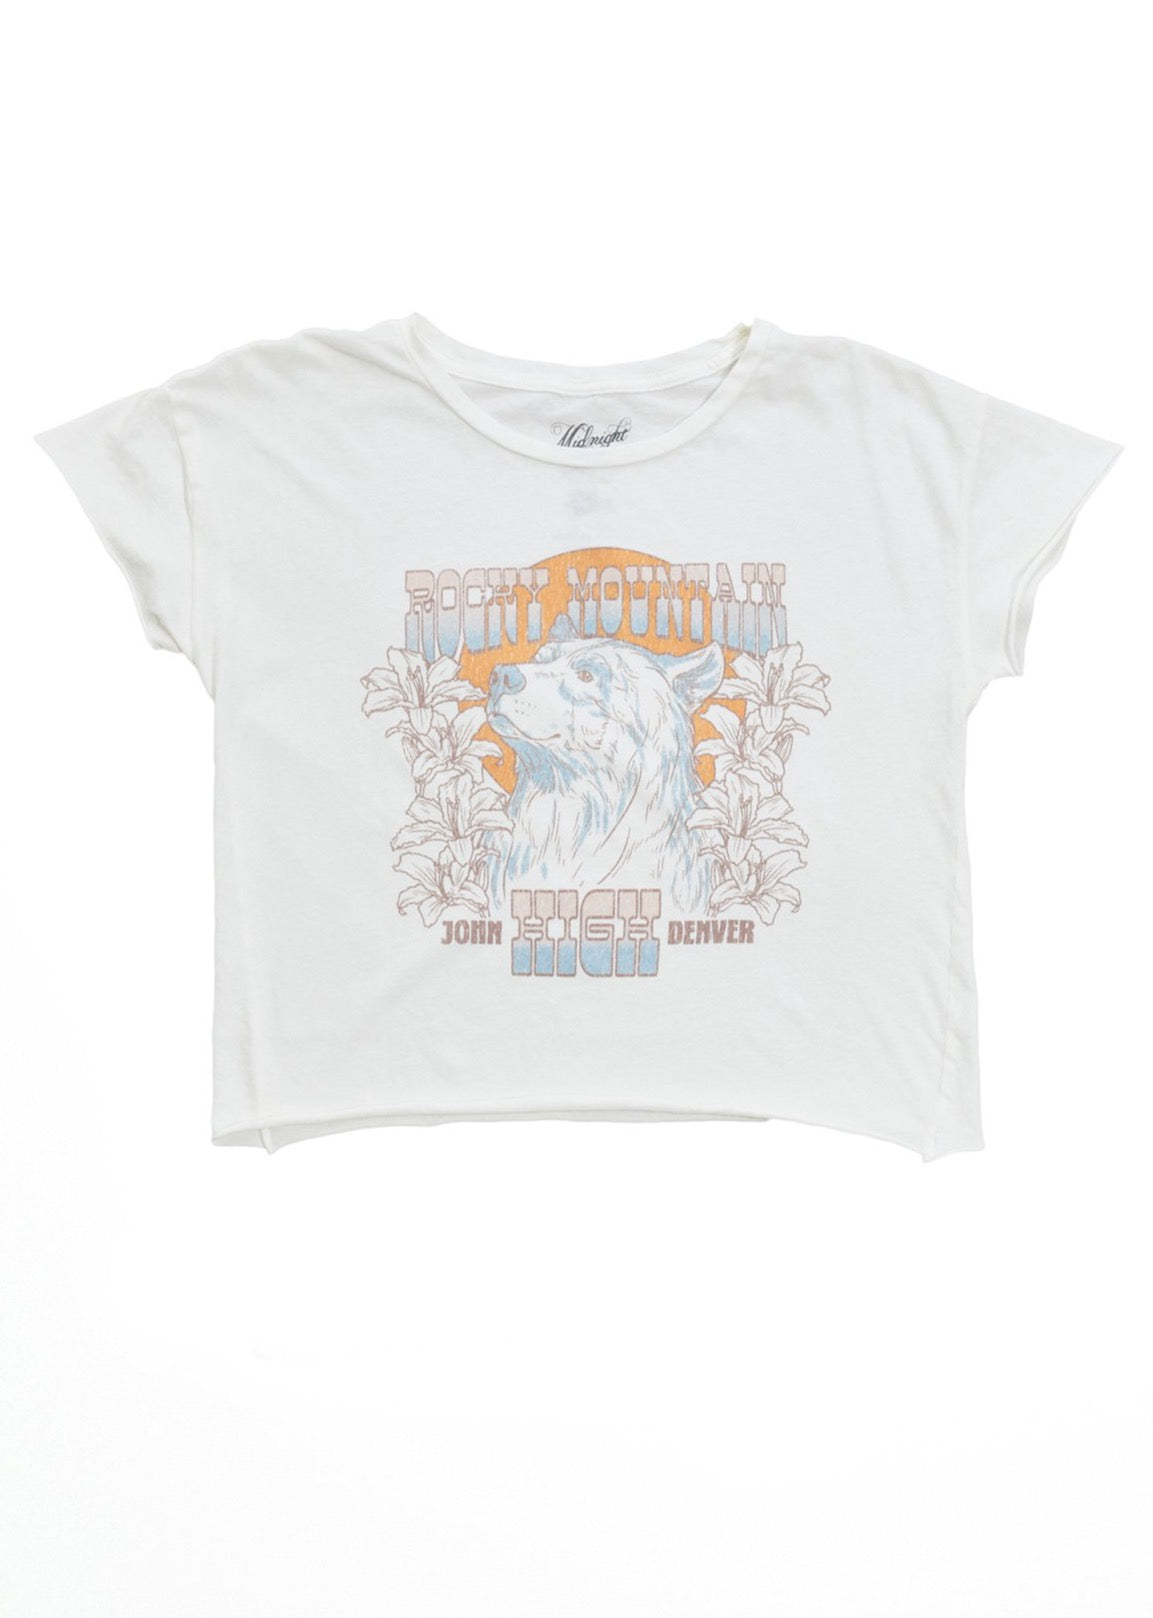 John Denver Rocky Mountain High Women's Cut-Off - Women's Tee Shirt - Midnight Rider